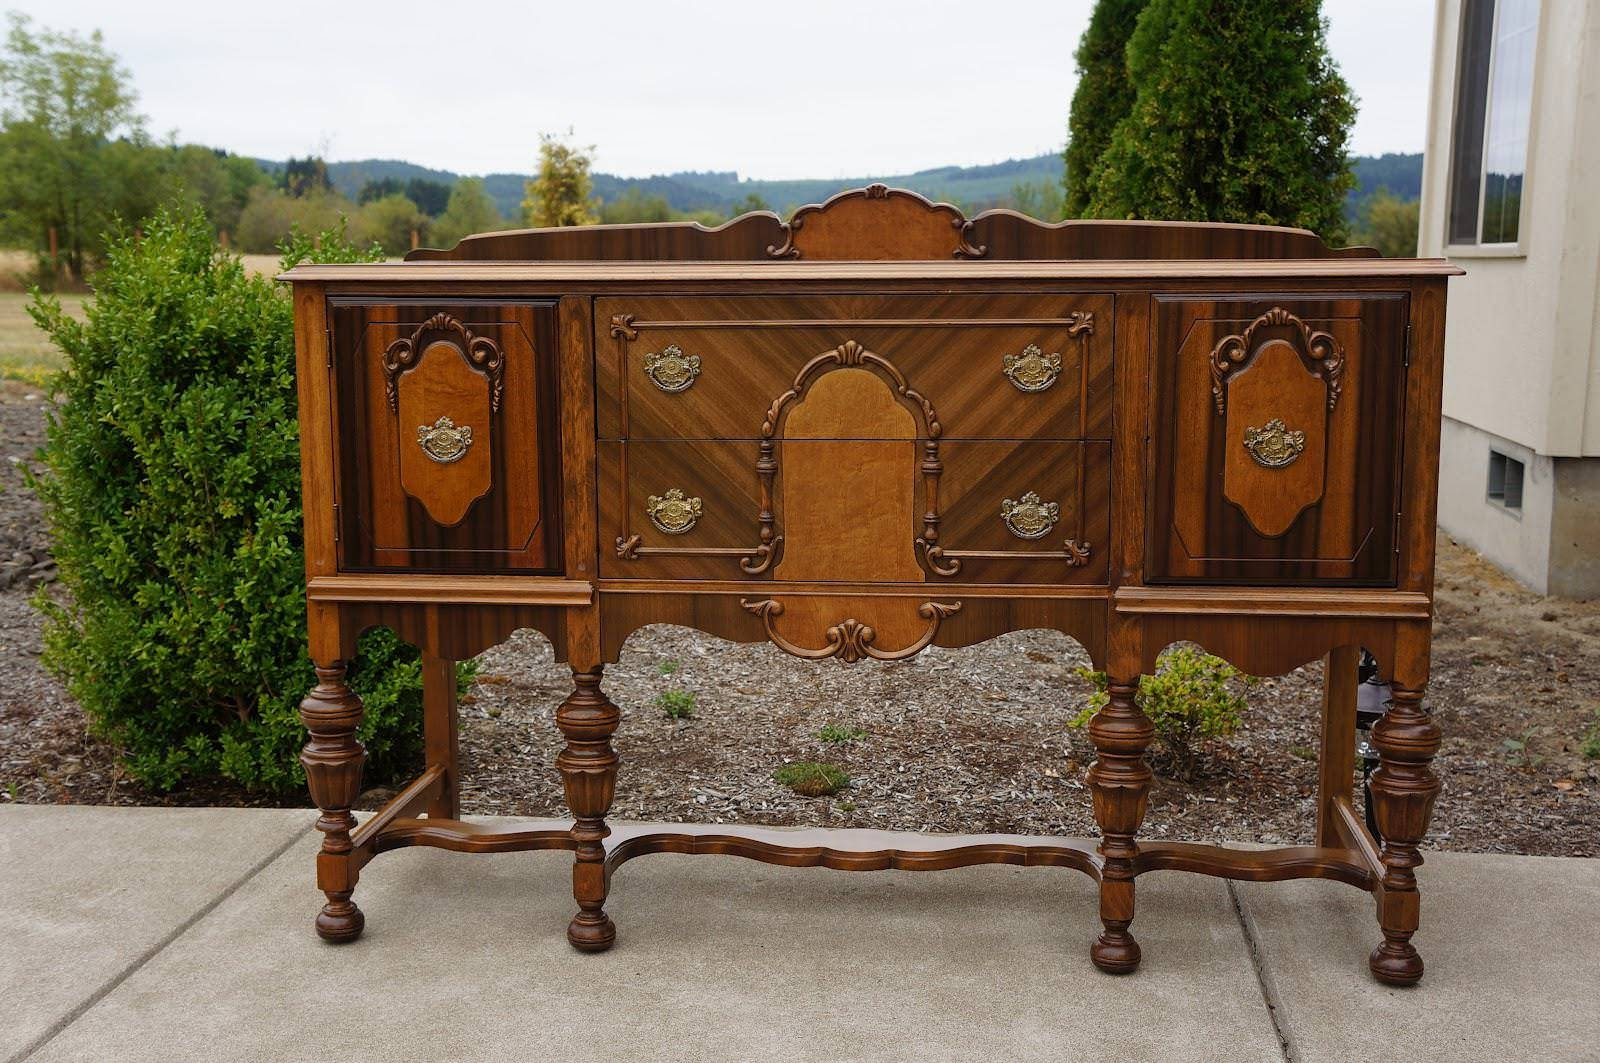 Luxury Antique Sideboards And Buffets — Interior Home Design Throughout Best And Newest Antique Sideboards And Buffets (#10 of 15)